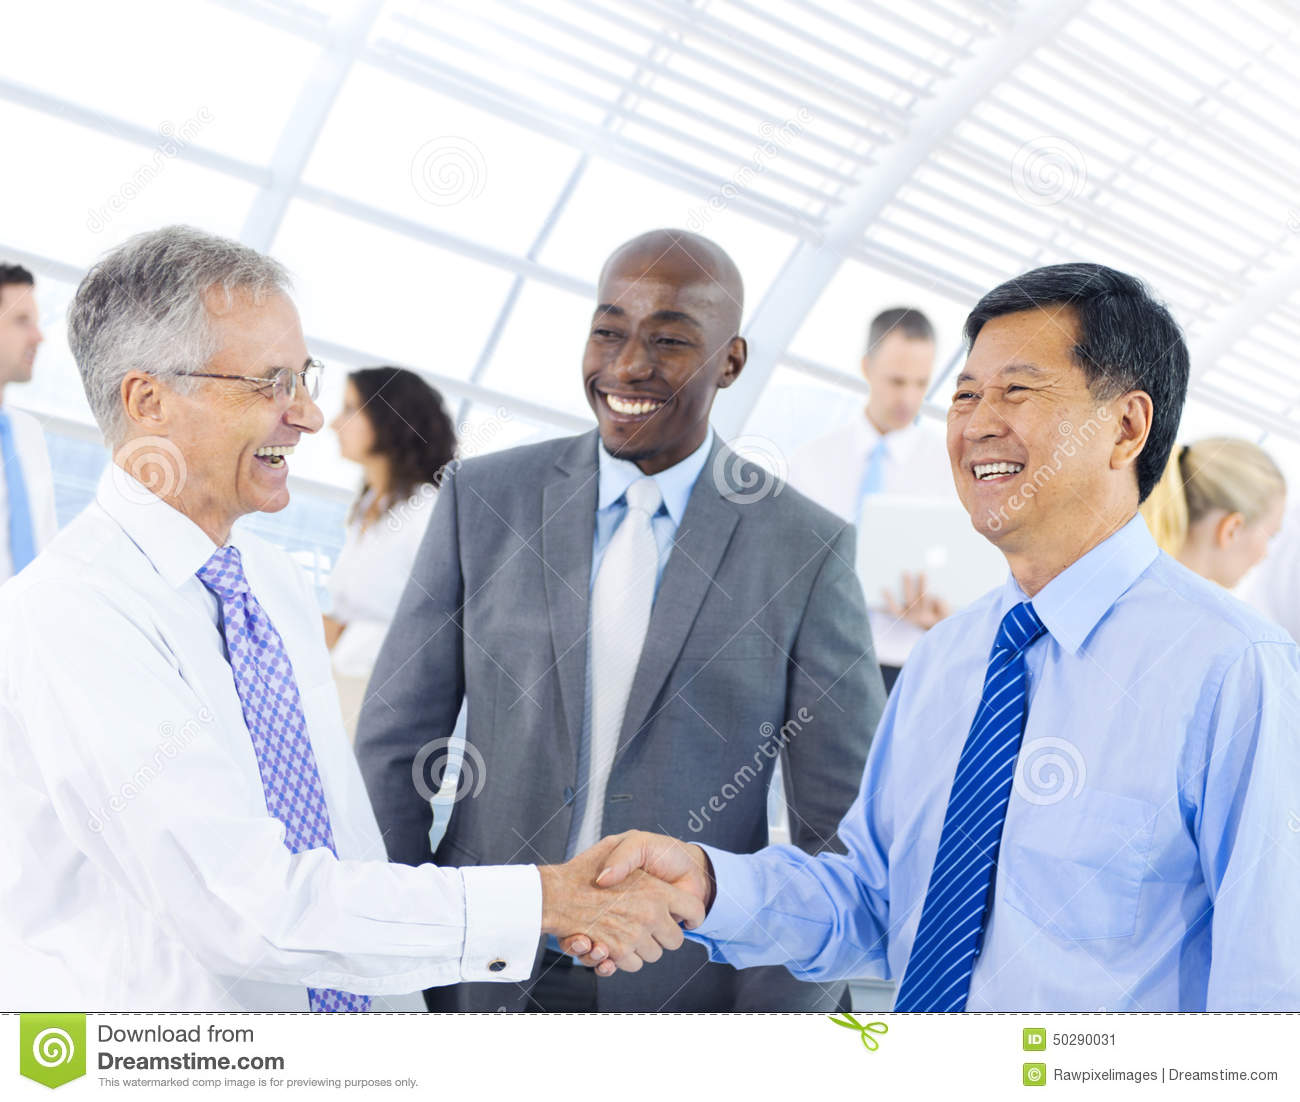 Group Of Business People Meeting Stock Photo - Image: 50290031